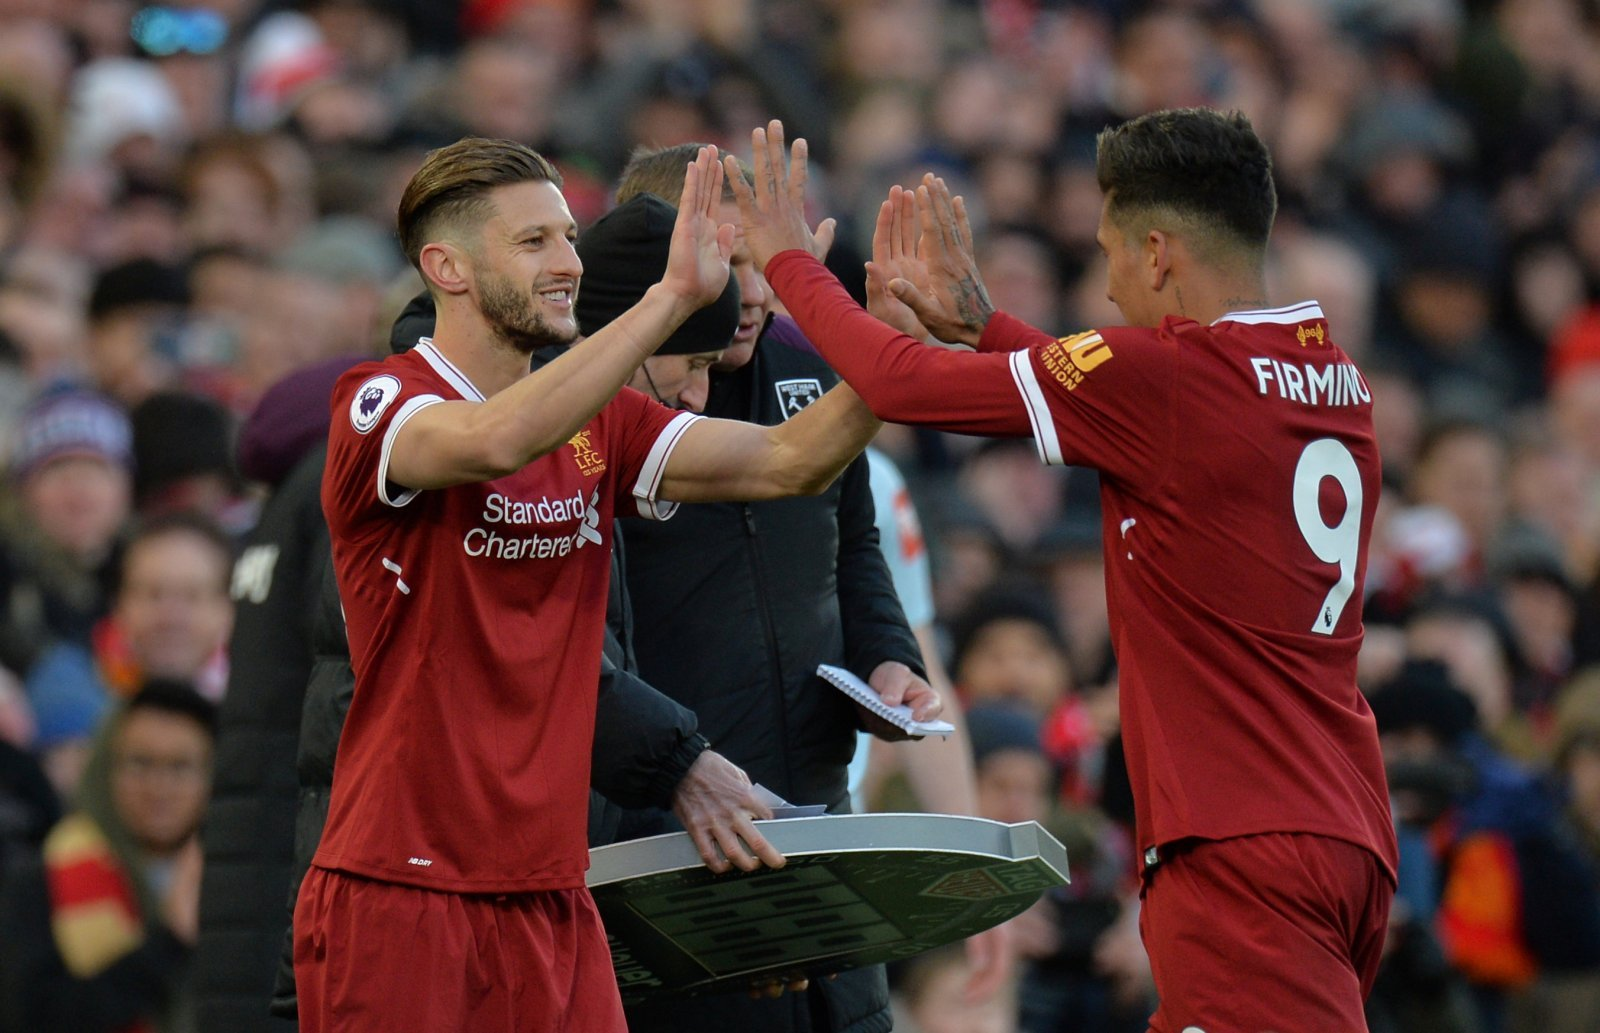 Liverpool fans react to Firmino and Lallana's brilliance against Leicester in 2016